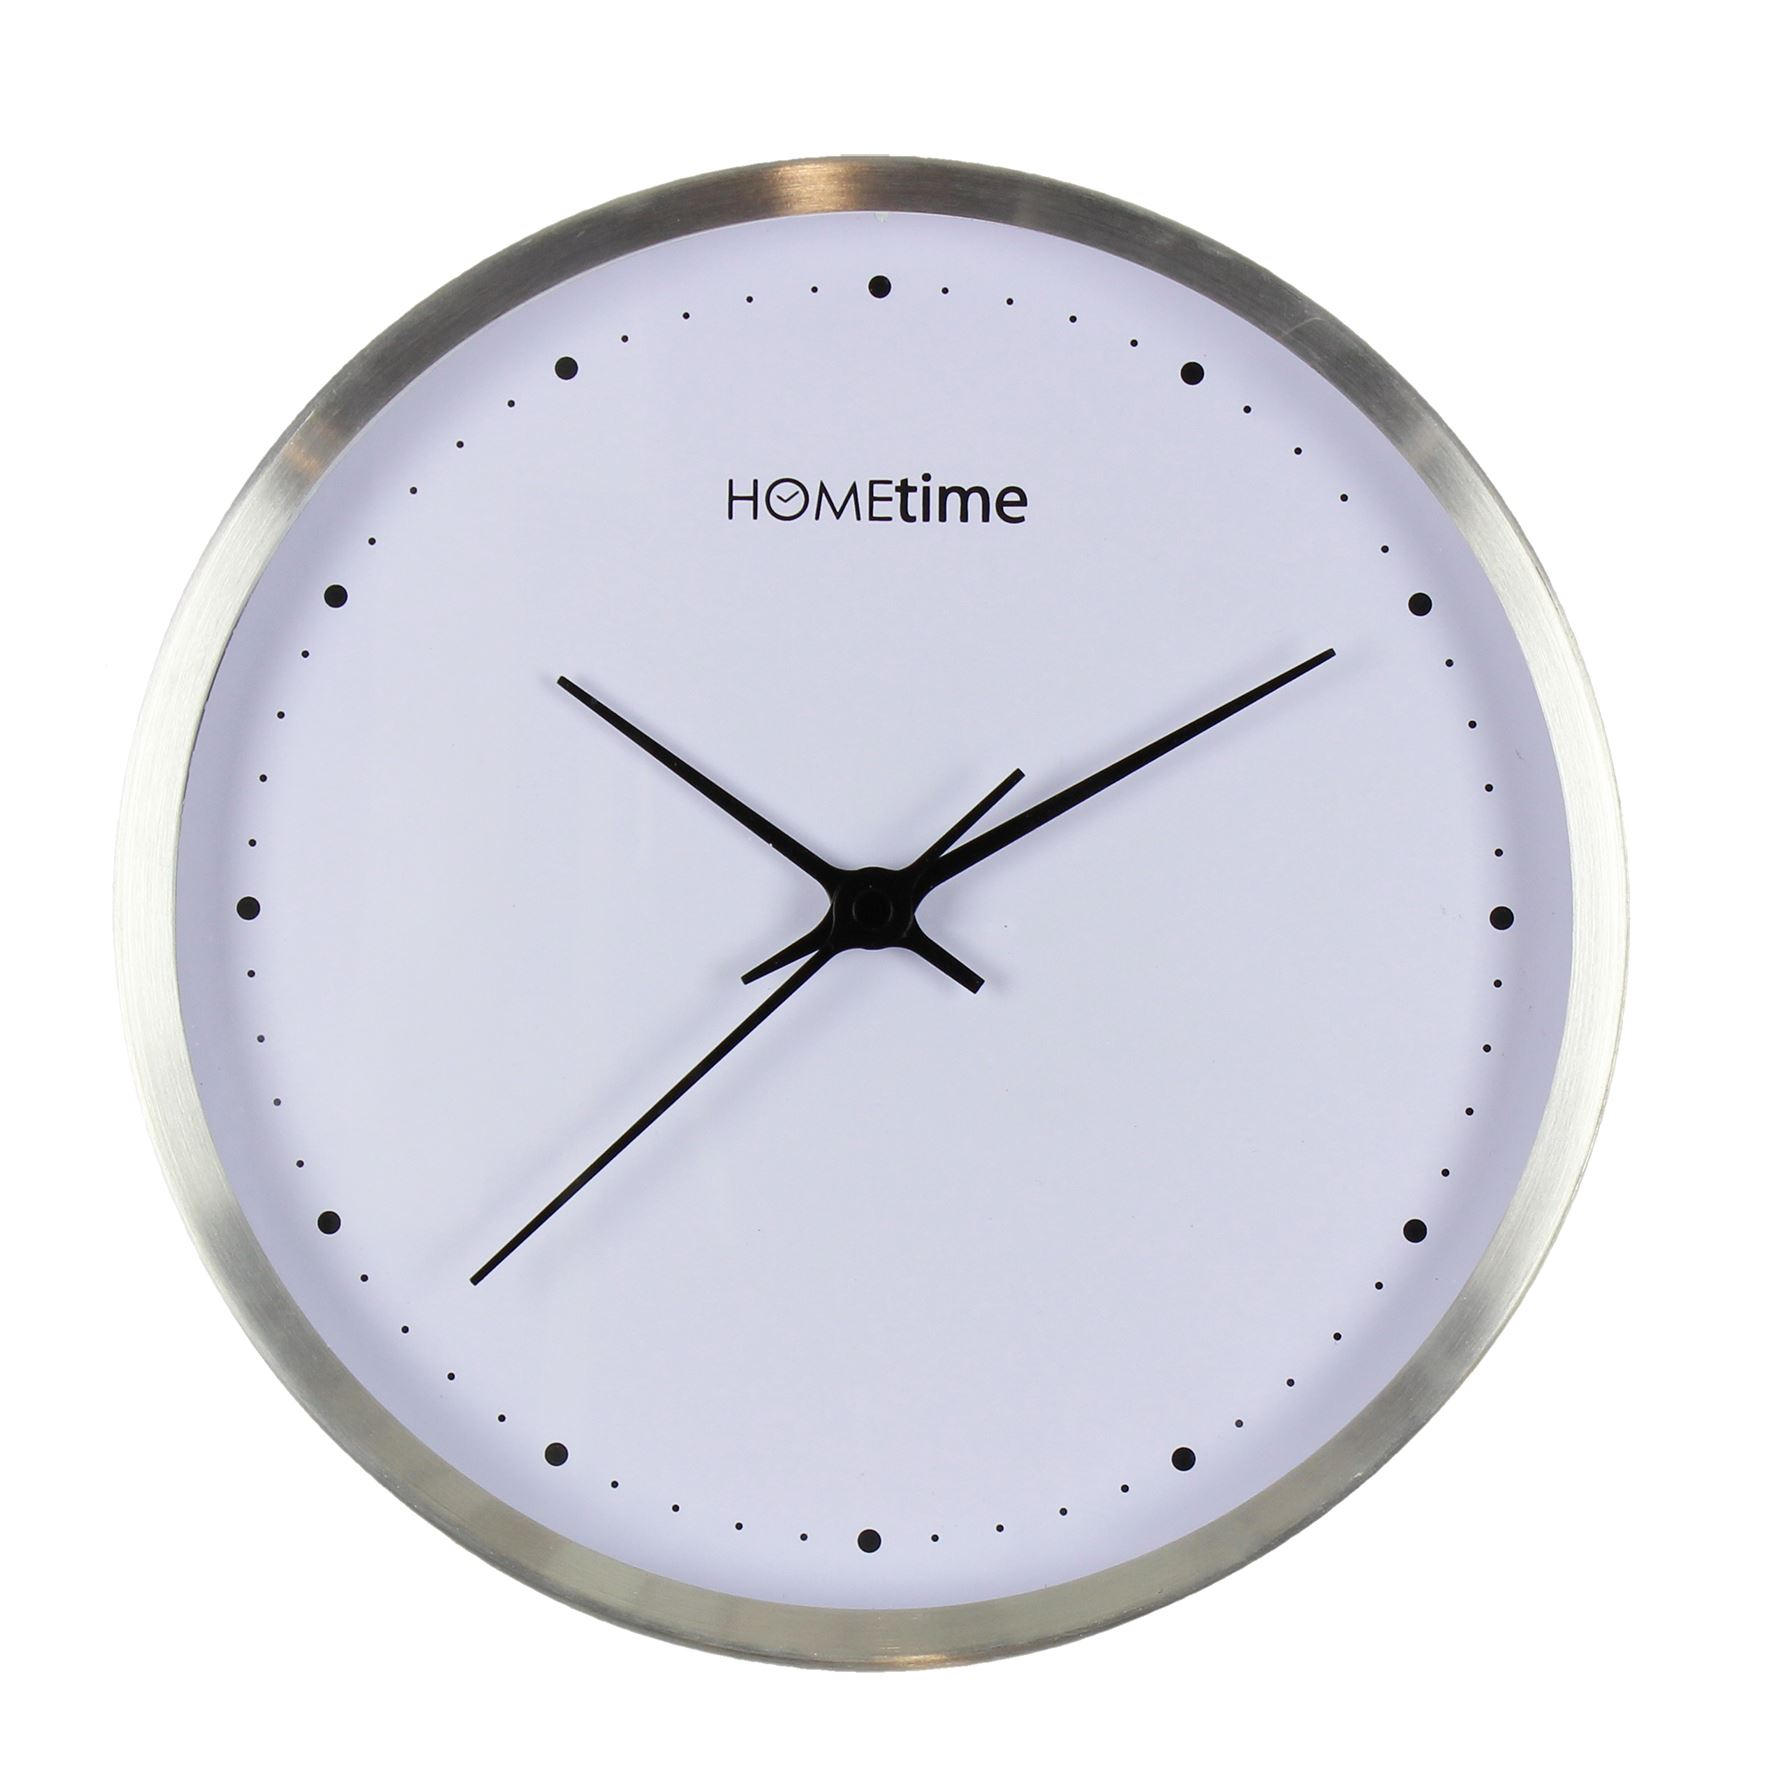 Hometime Aluminium Wall Clock Silver Finish 25cm